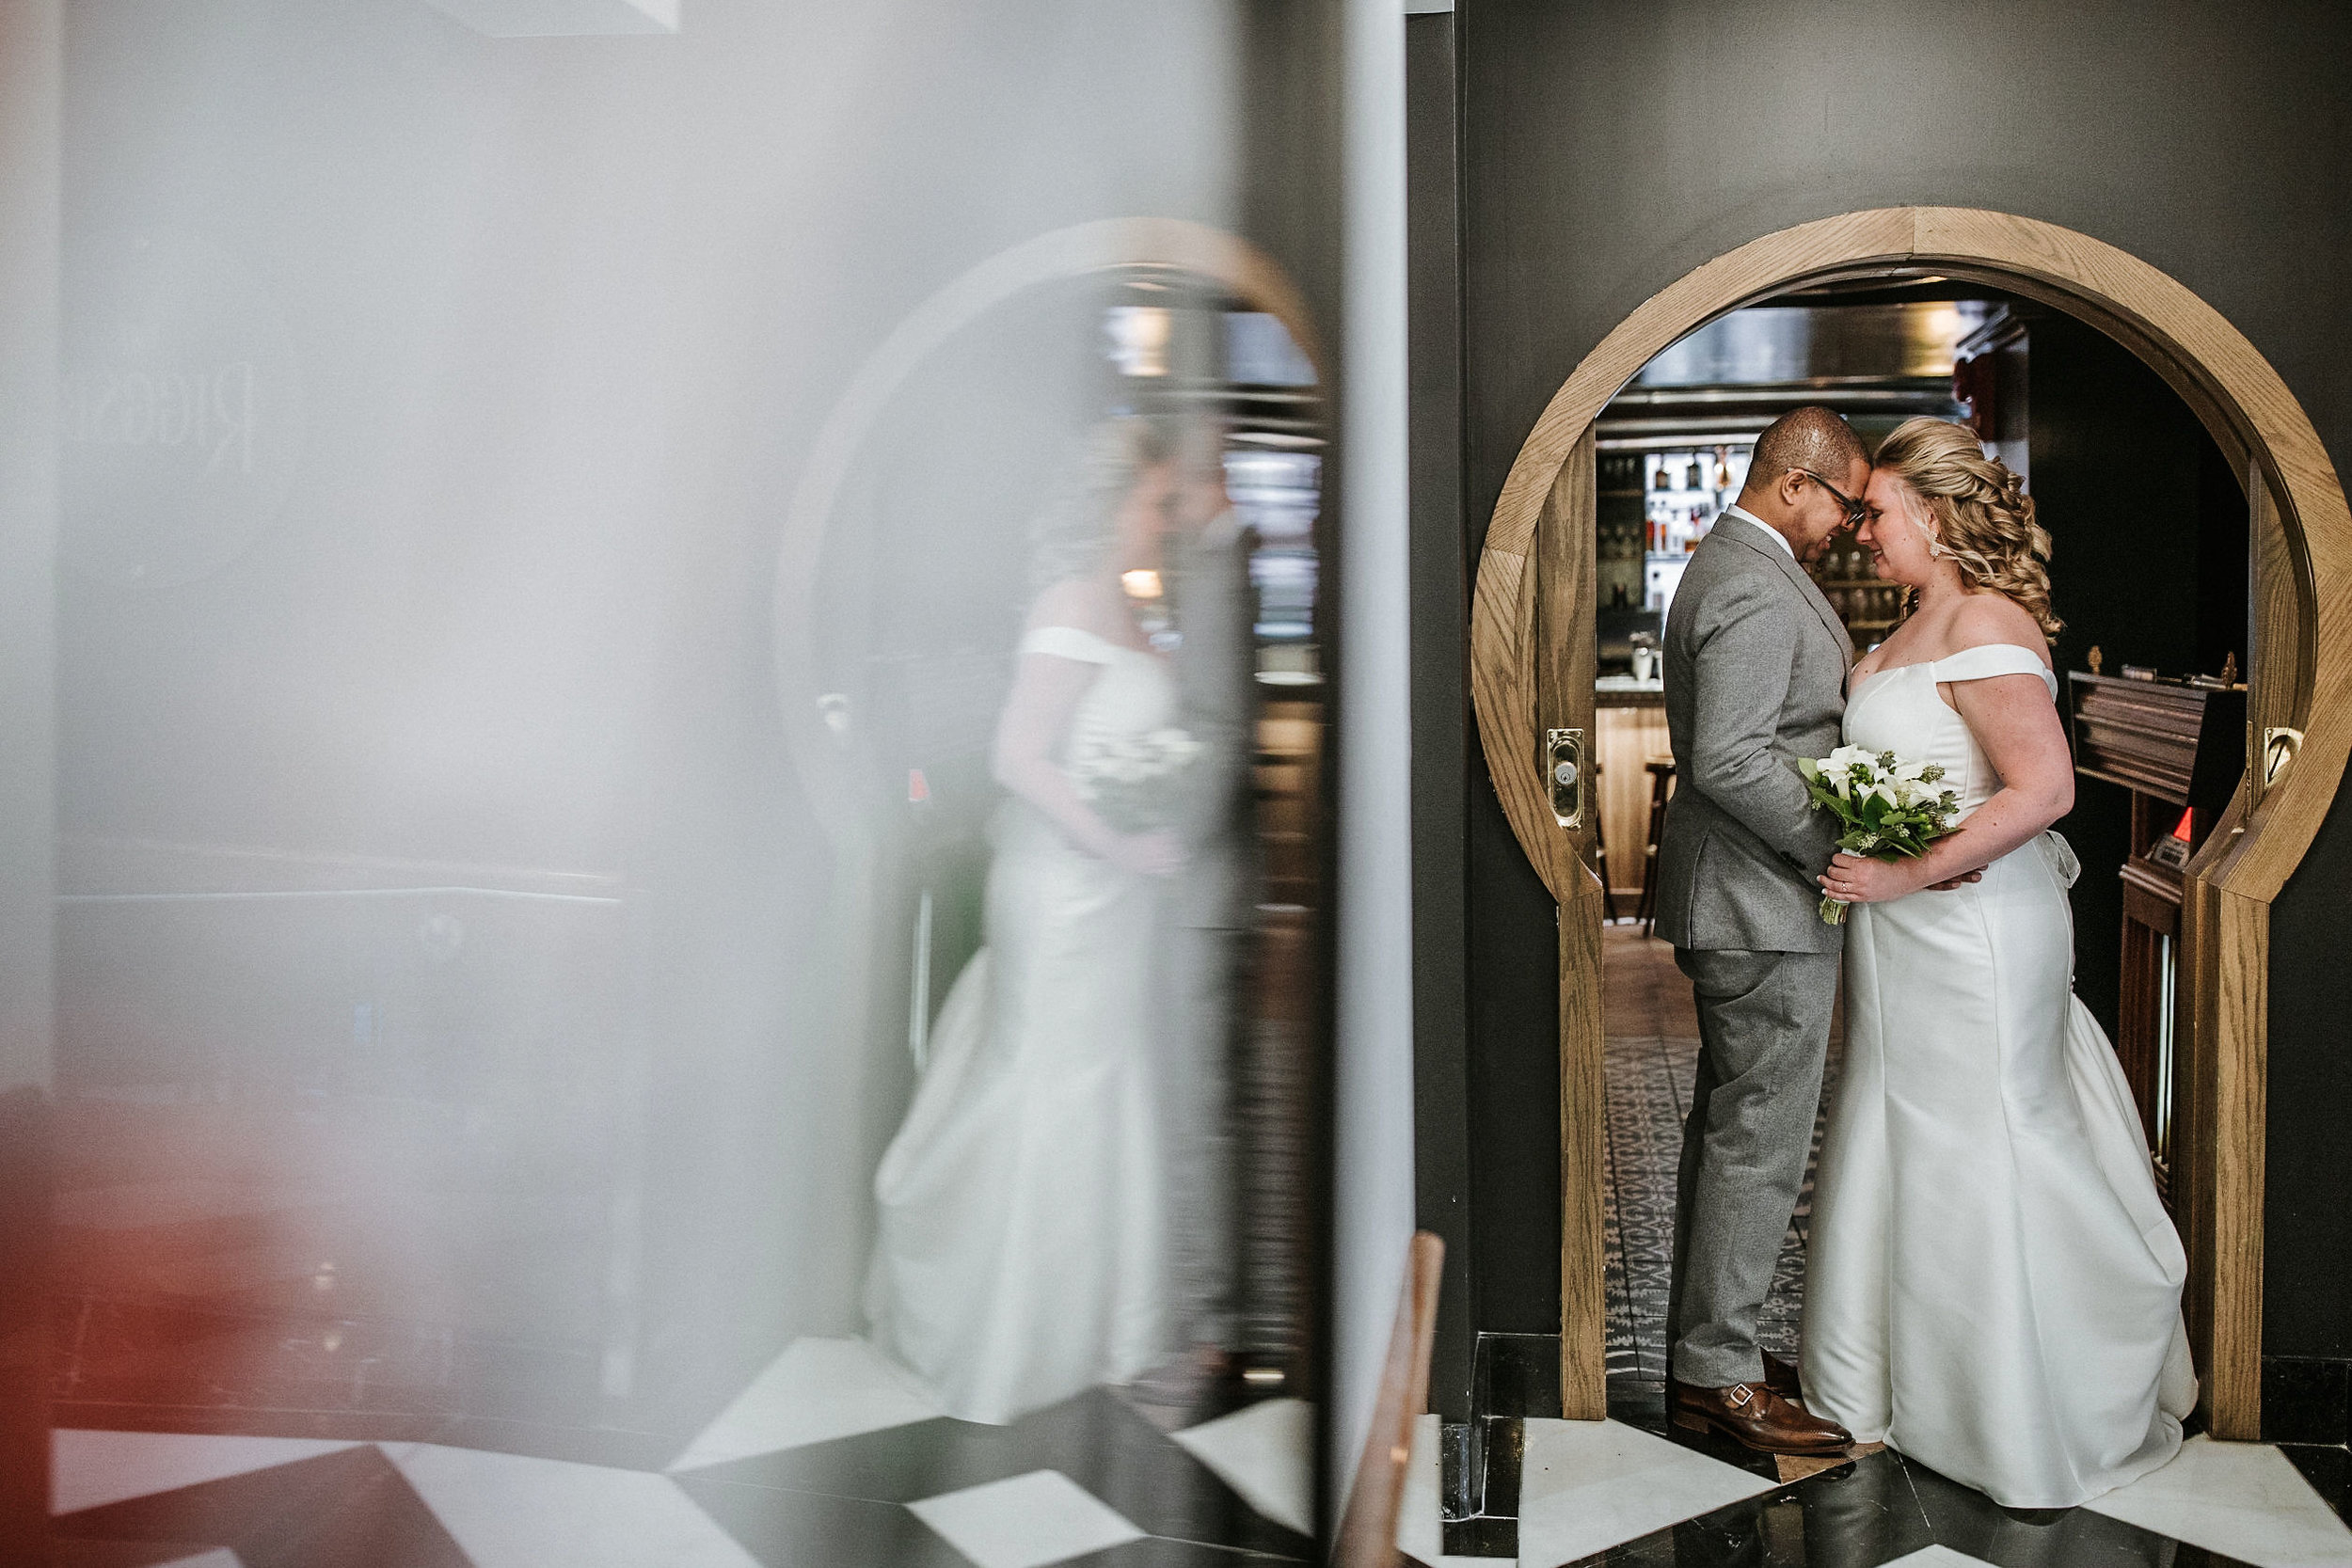 bride and groom embracing at the kimpton carlyle hotel